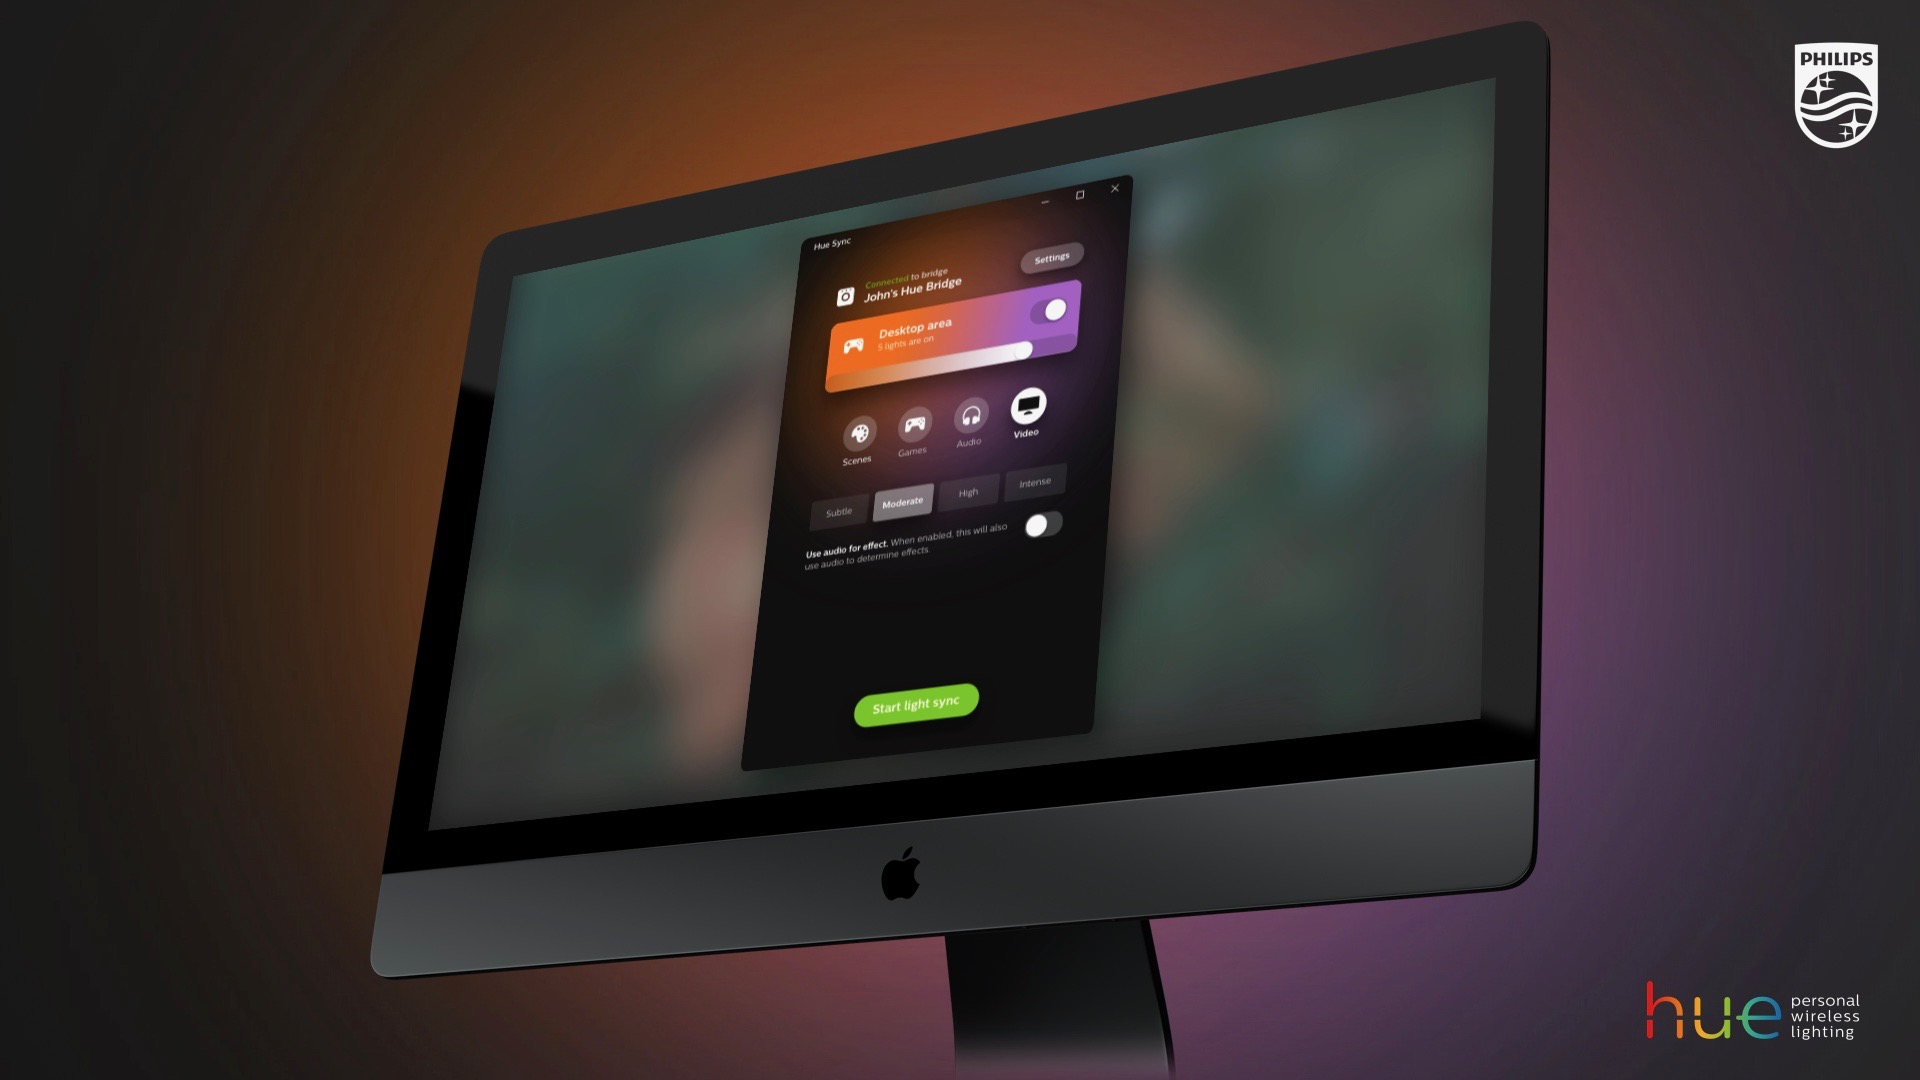 Philips Hue Sync Now Available For Mac, App Syncs Lighting To Games,  Videos, And Music